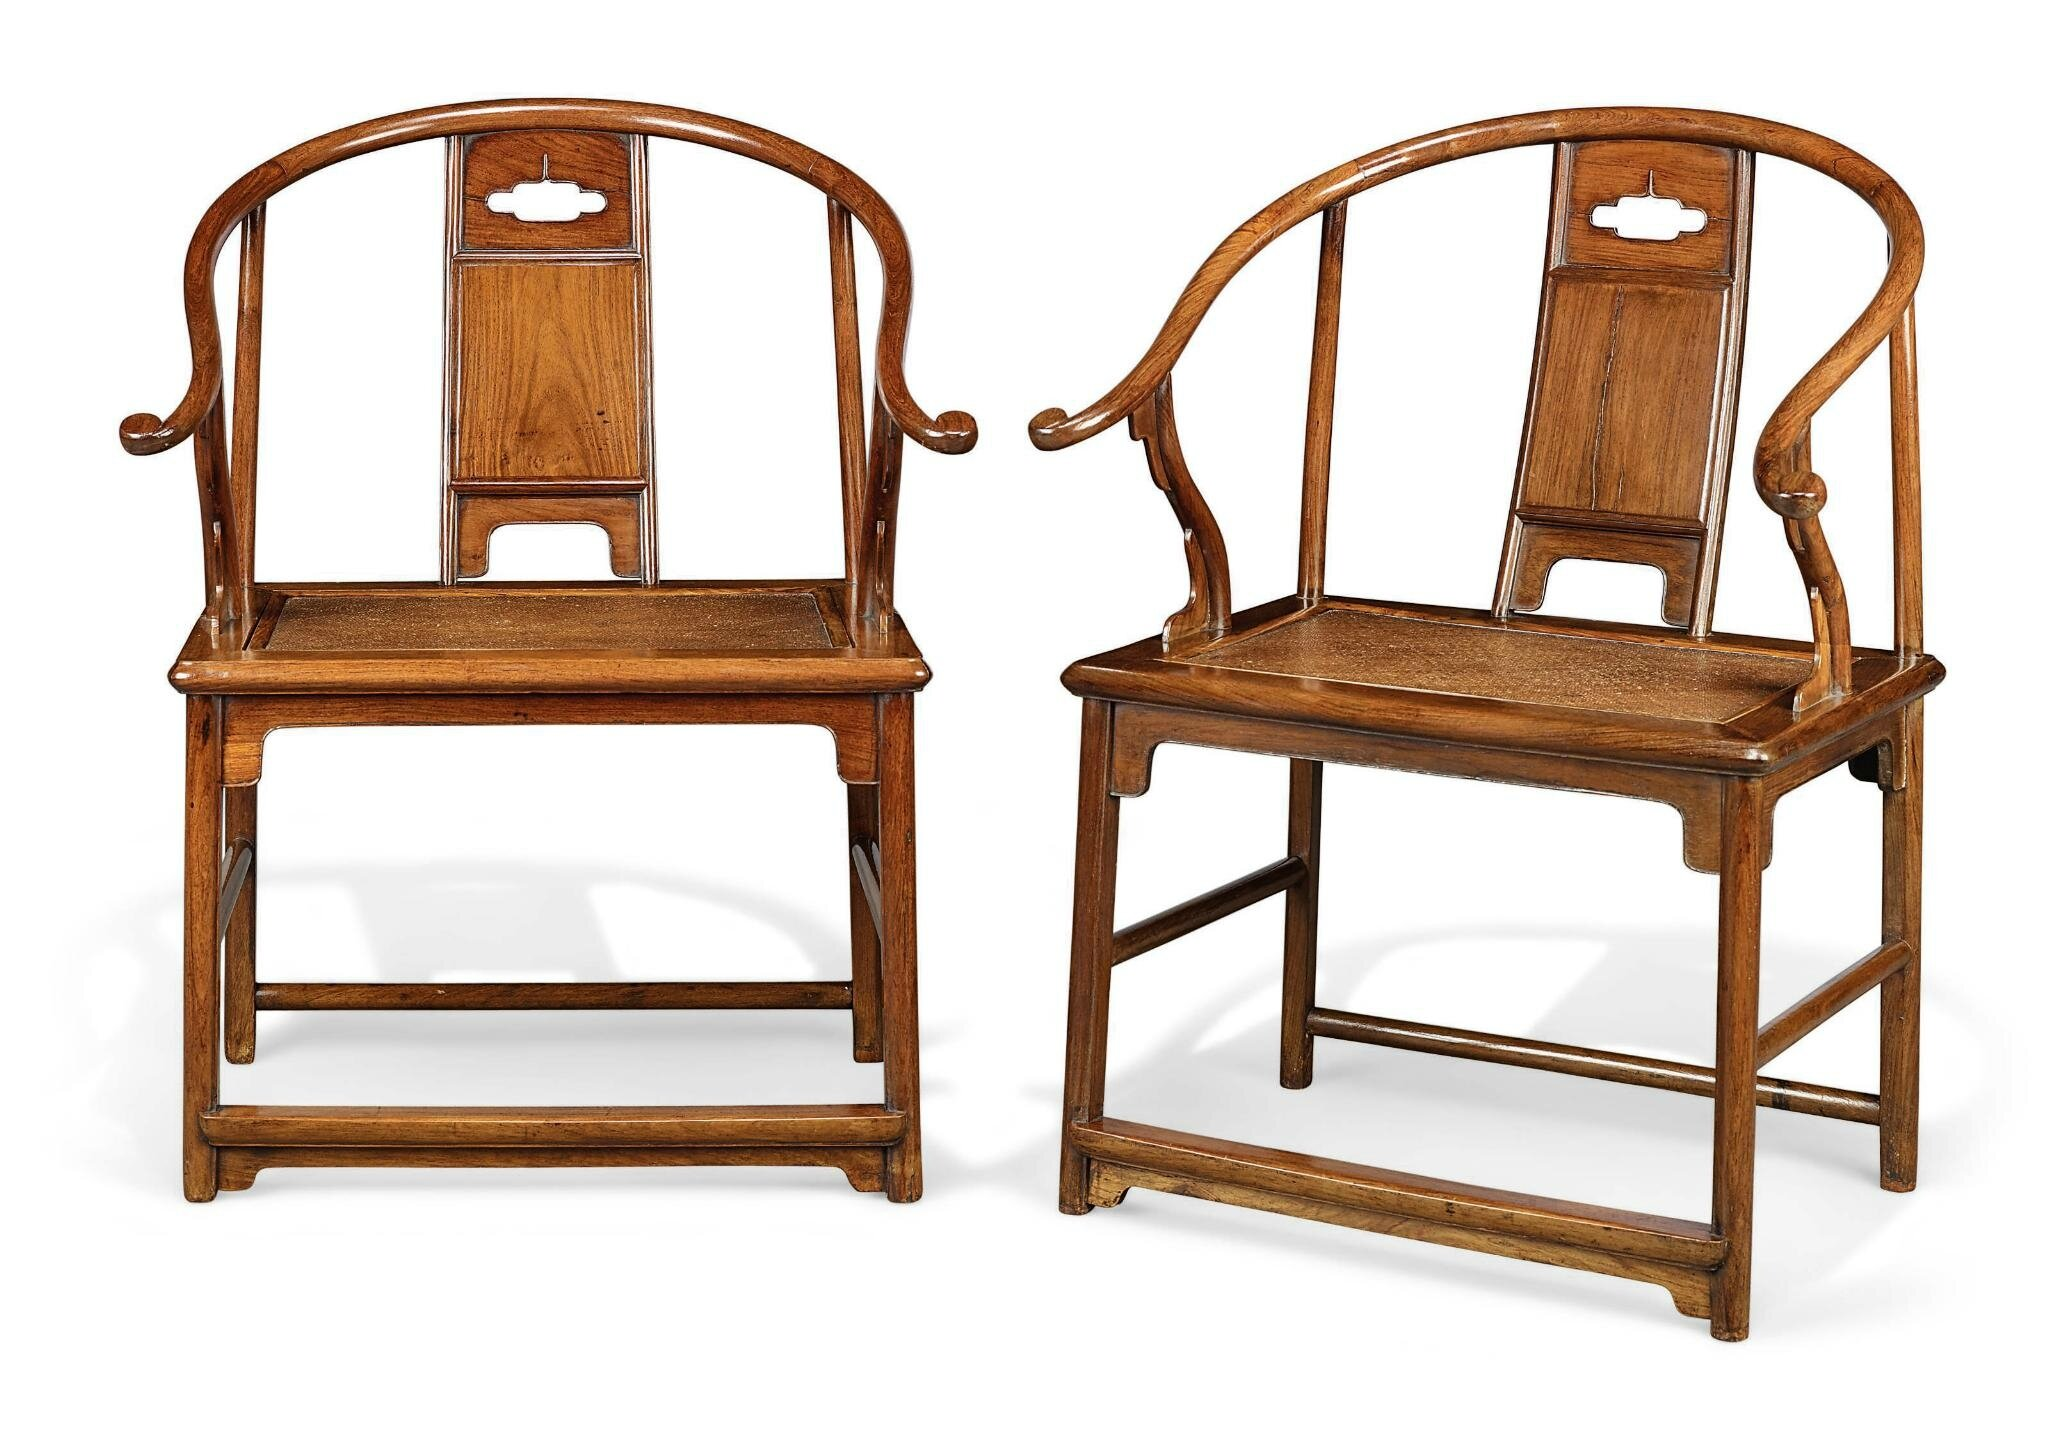 Merveilleux An Extremely Rare And Important Pair Of Huanghuali Horseshoe Back  Armchairs, Quanyi, Ming Dynasty, 17th Century